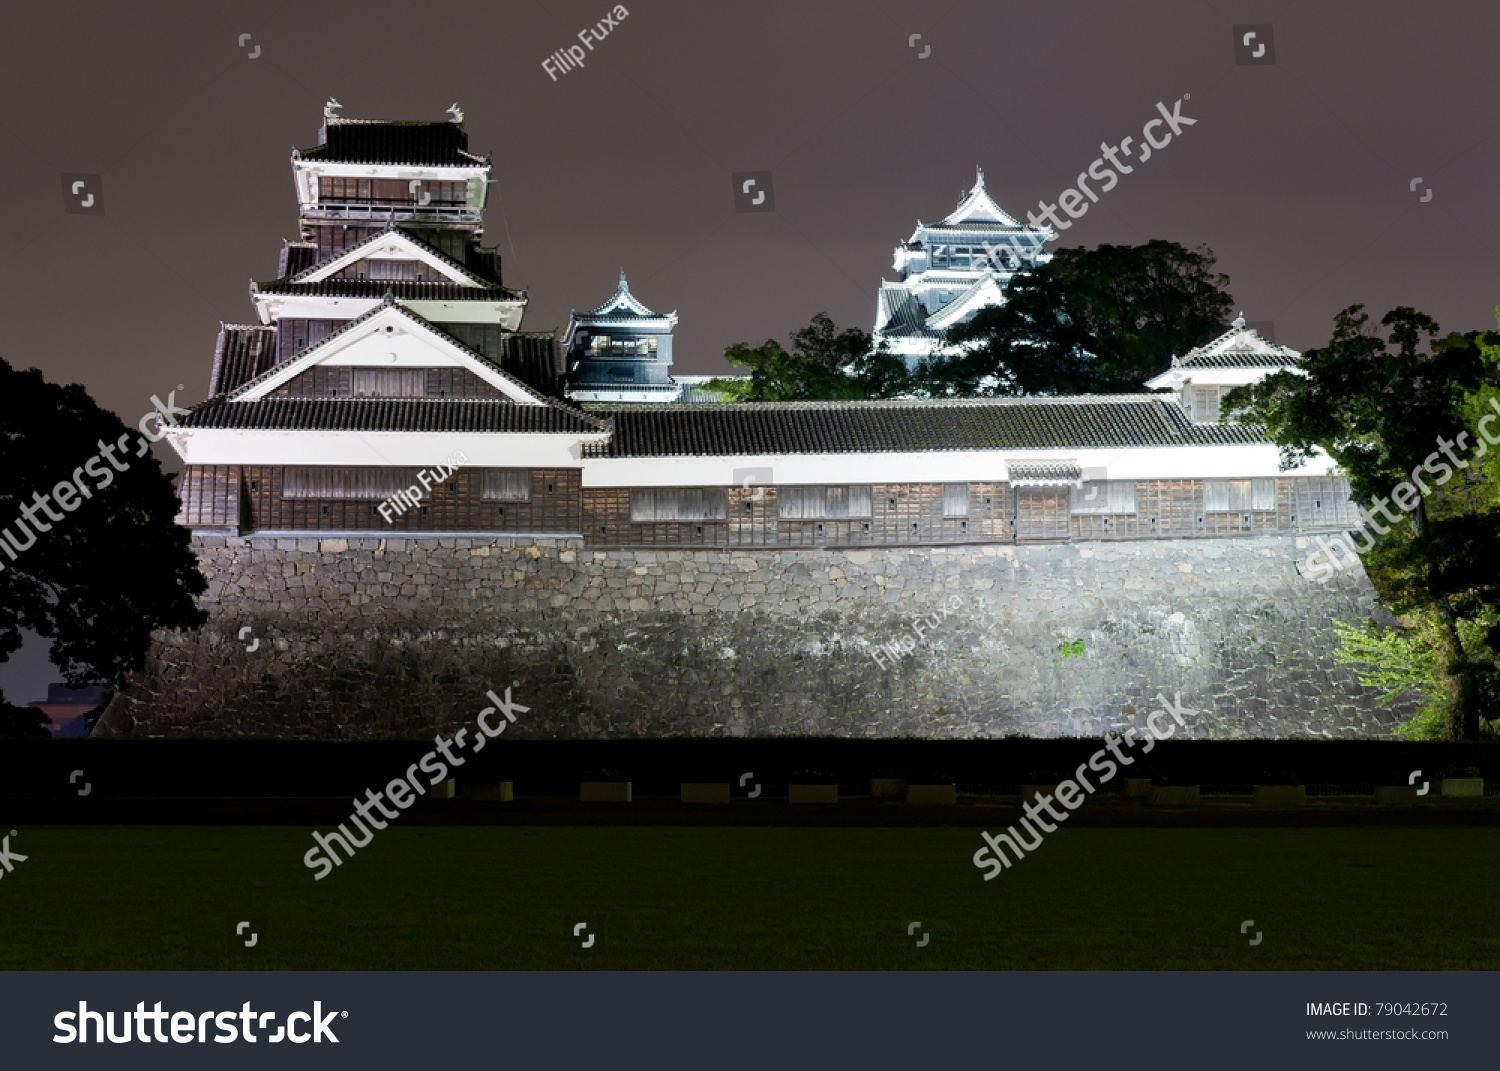 The famous castle in Japanese cisty of Kumamoto is in a fact a reconstruction of the historical building that was destroyed during the WW2. #79042672